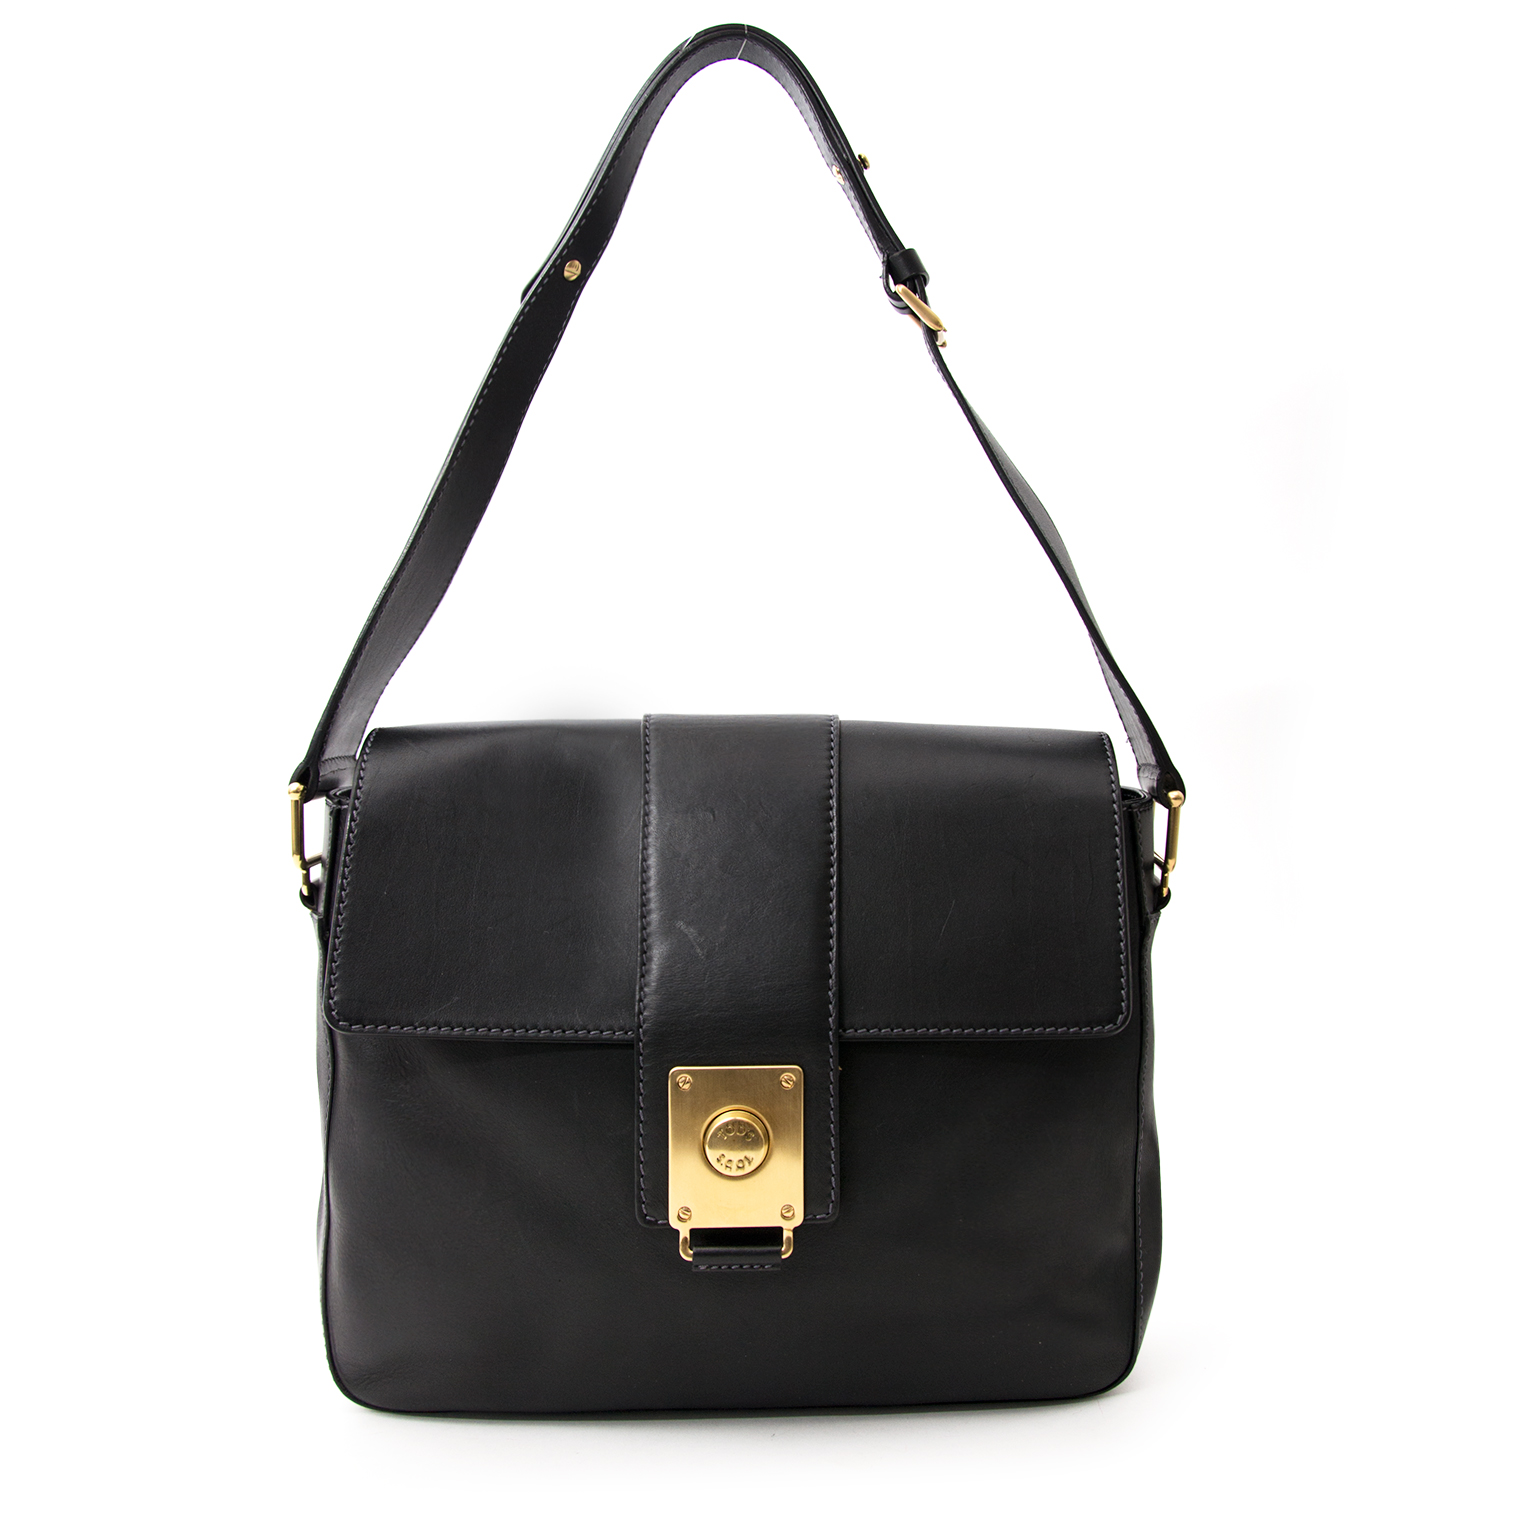 Looking to buy an authentic handbag from Tod's for the best price? Shop at Labellov